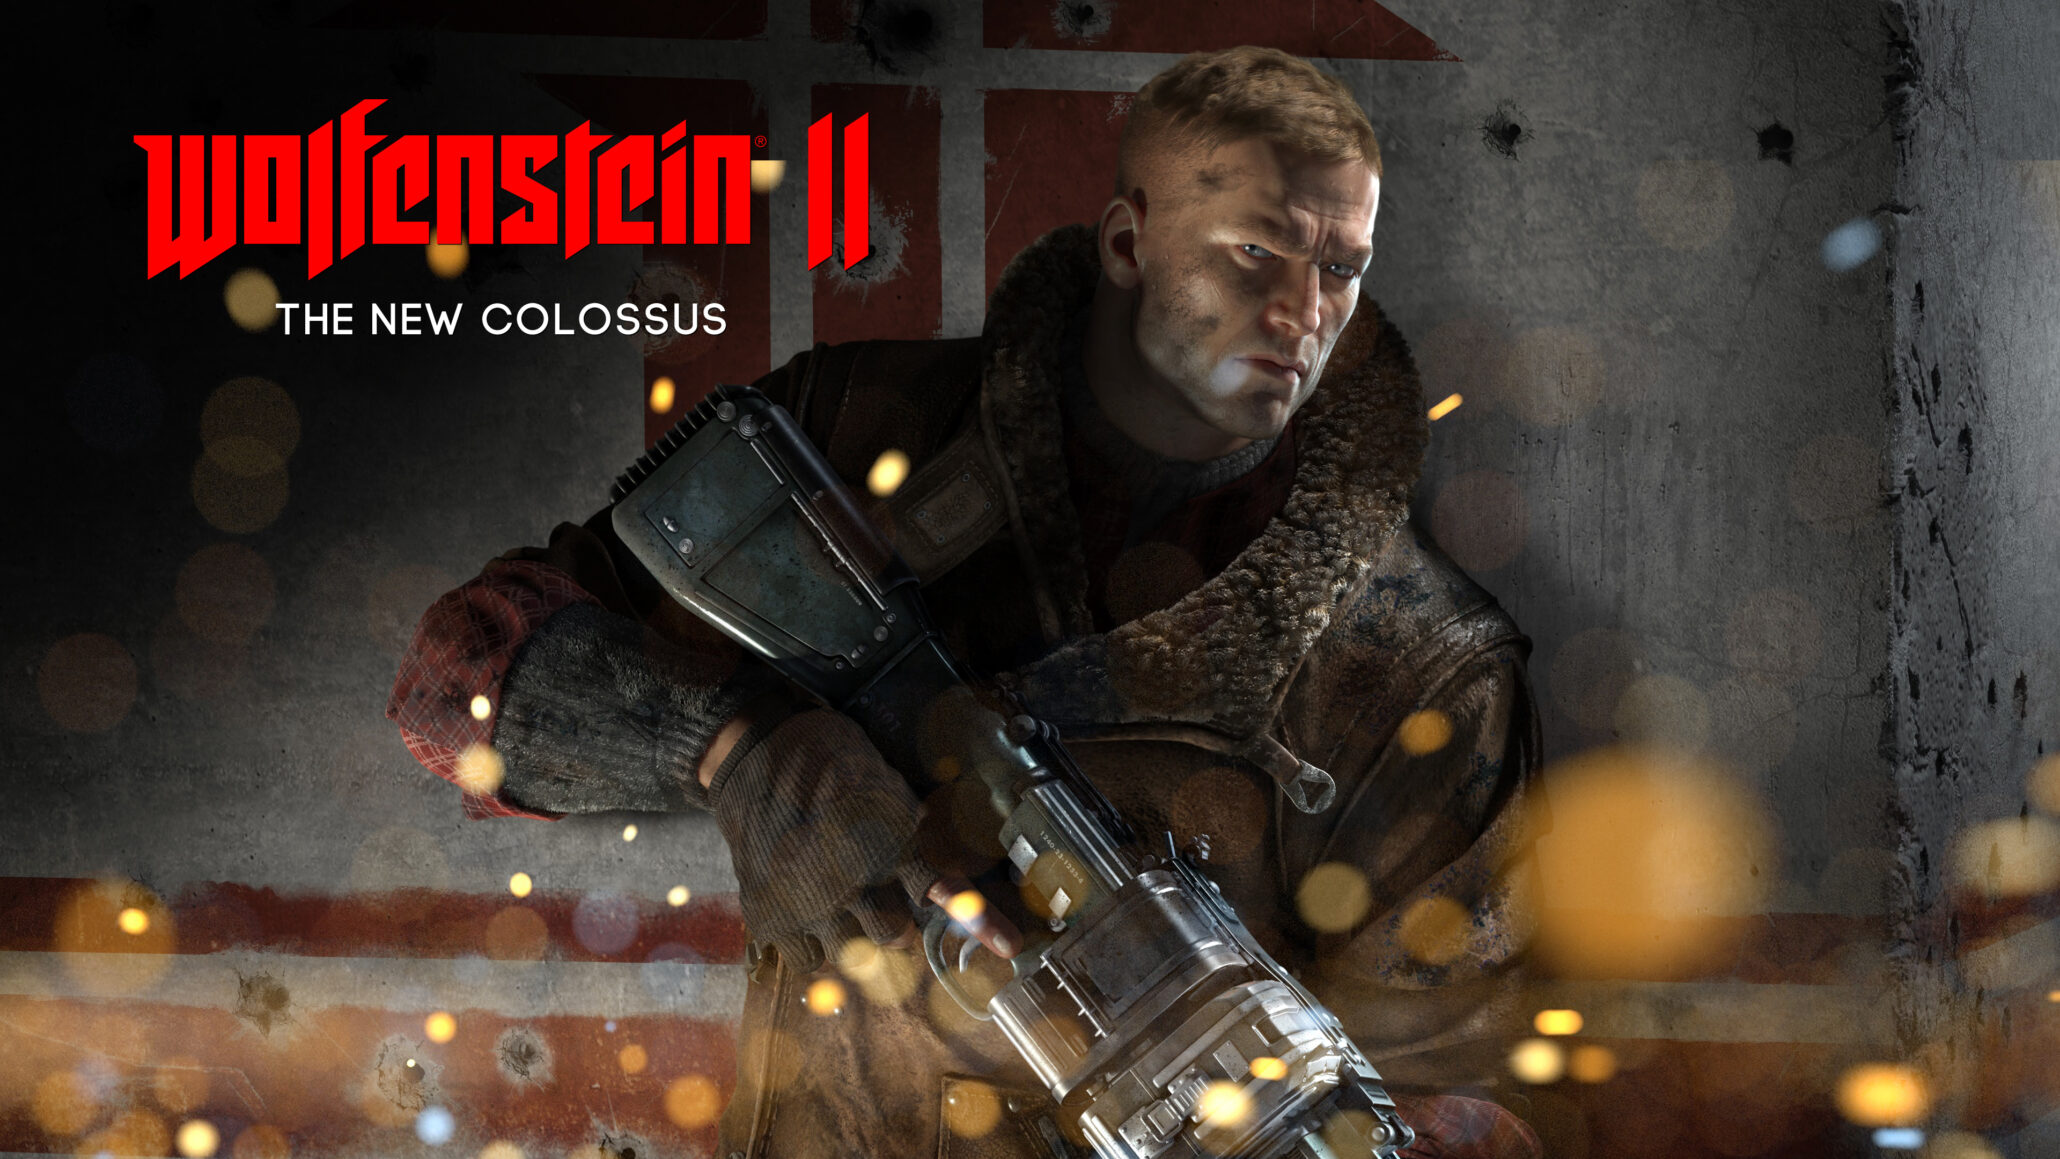 https://cdn.wccftech.com/wp-content/uploads/2017/11/wolfenstein-2-the-new-colossus-art-2060x1159.jpg